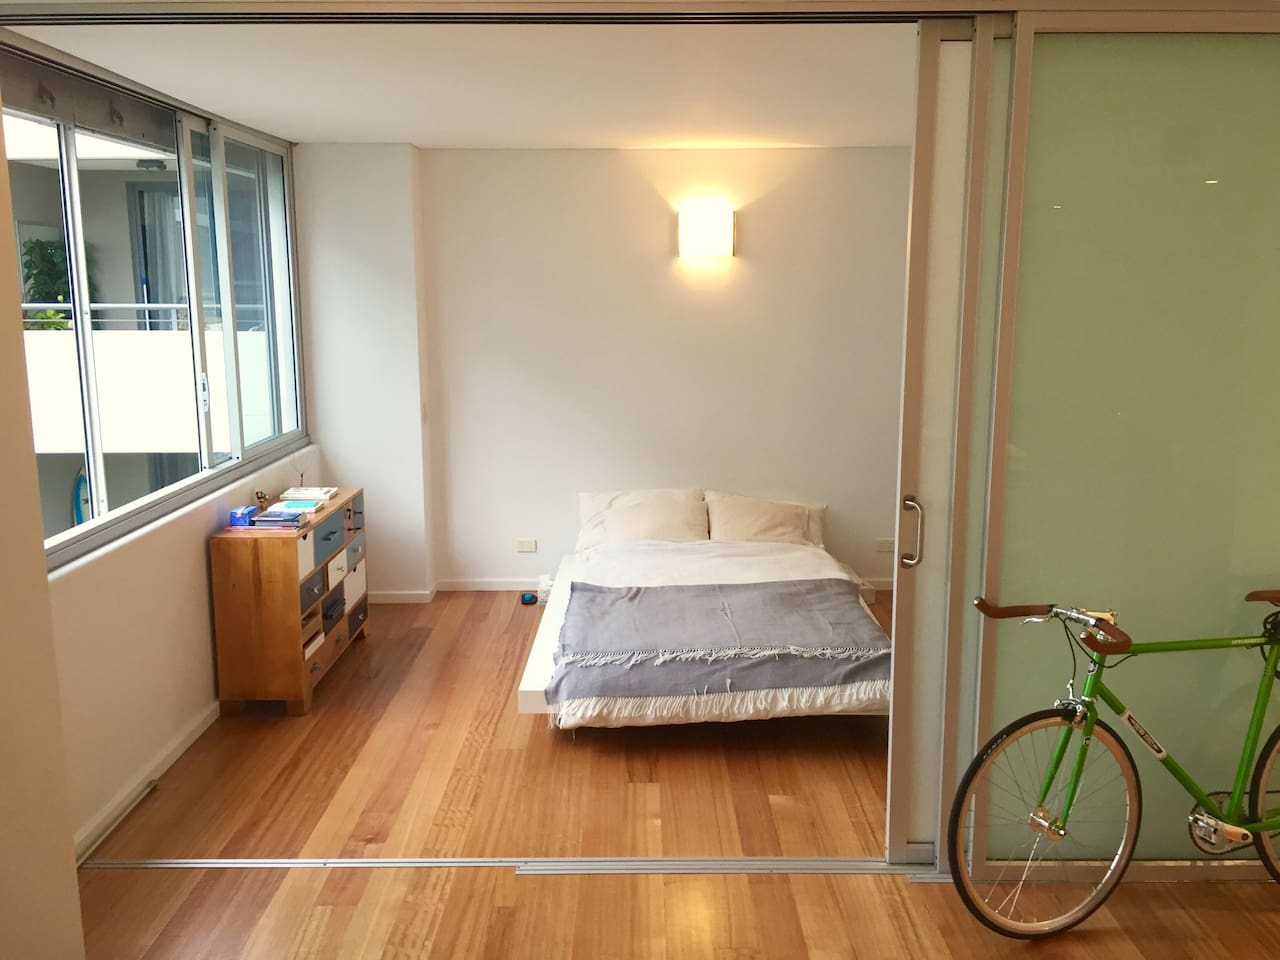 Our bedroom is spacious, light-flooded, has a huge built-in wardrobe and is separated to the rest of the apartment by a sliding door. The big windows go out into the courtyard which allows for quite nights and good sleeps